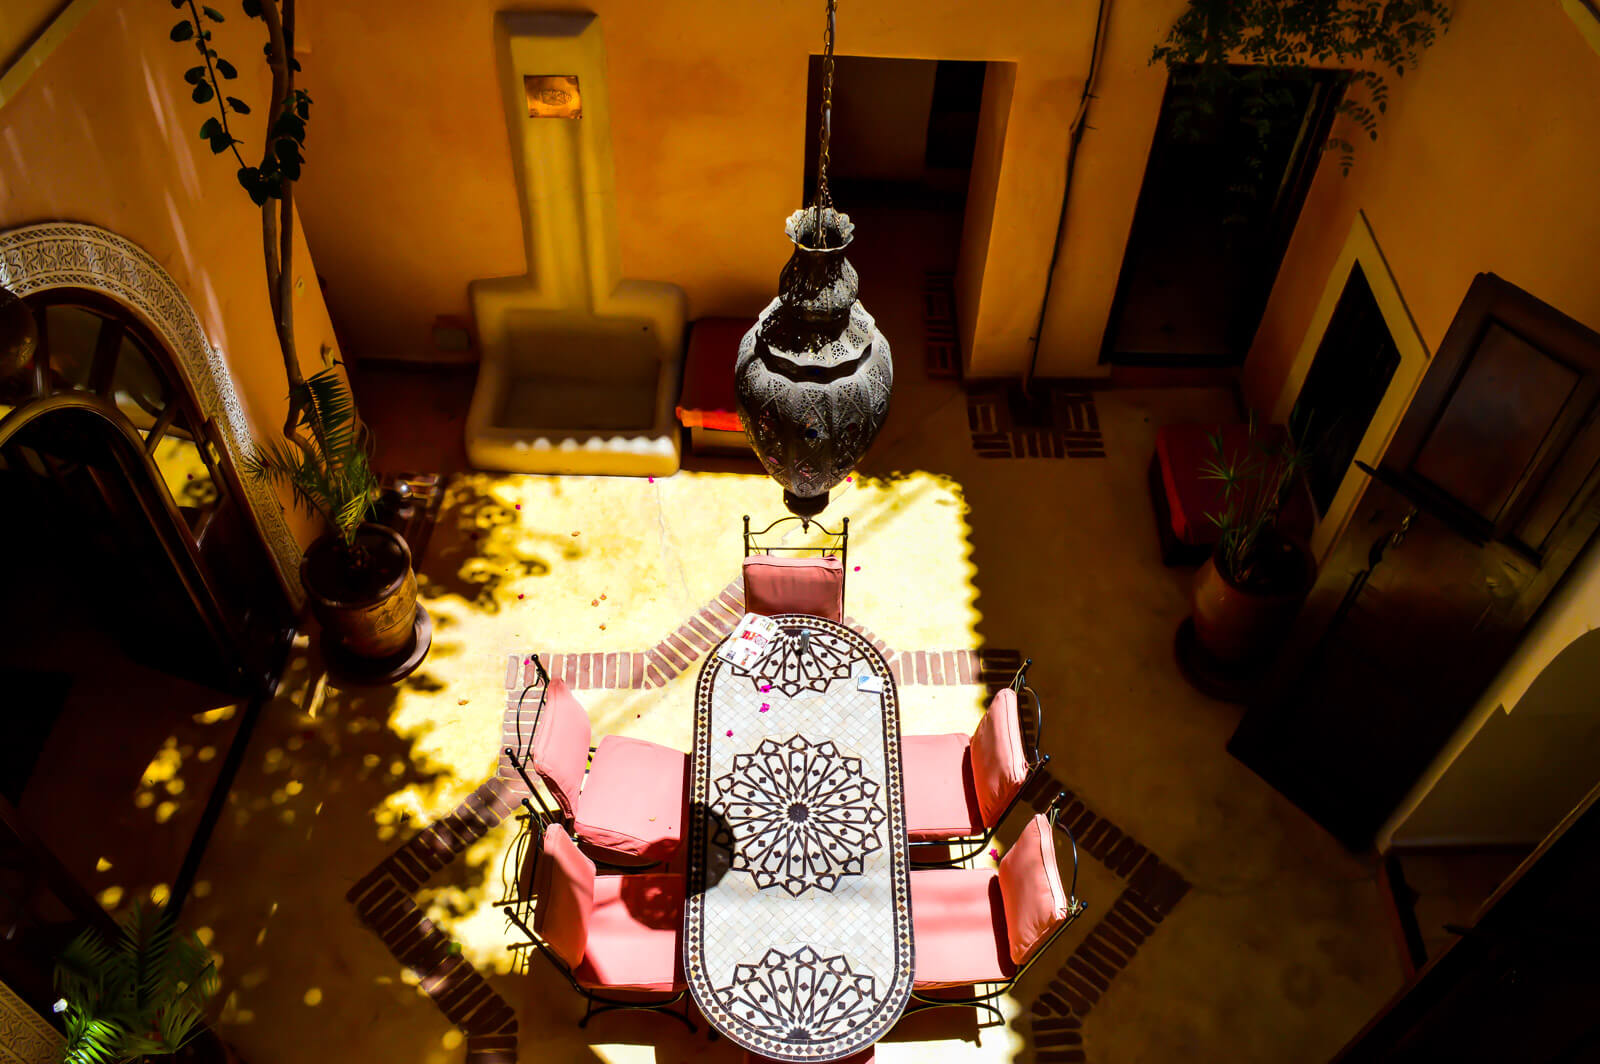 The courtyards of The Riads of Marrakesh